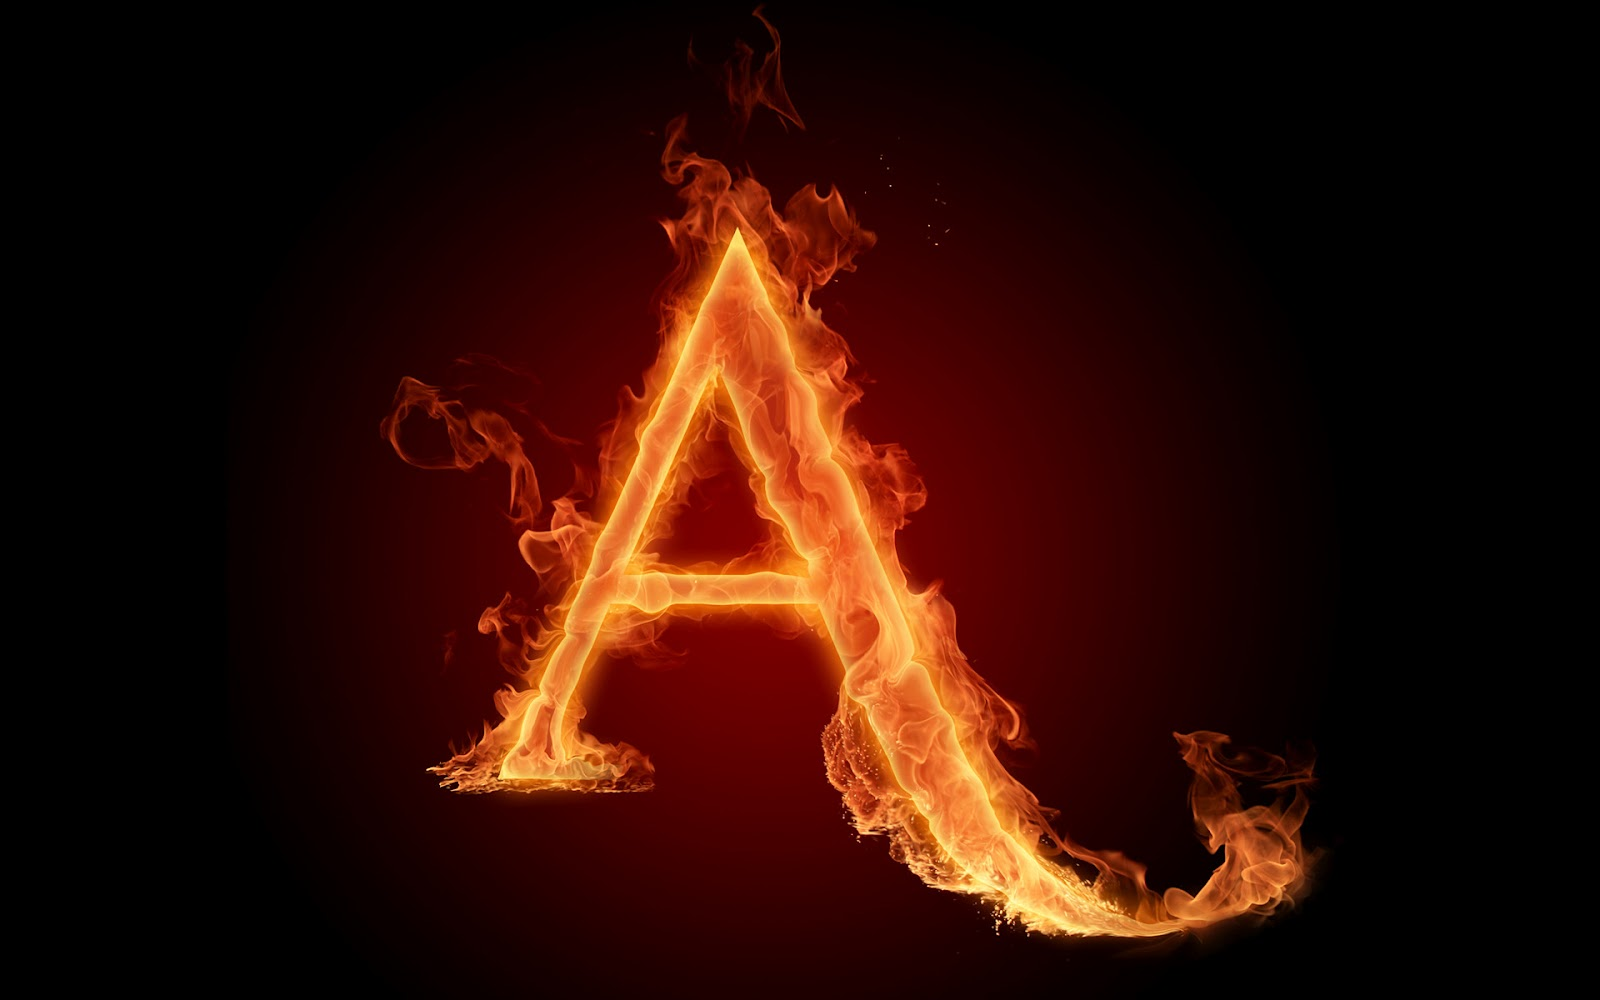 http://3.bp.blogspot.com/-2CznDDm8bn0/T0jWRygGCfI/AAAAAAAAM54/gEWe4Qbg42E/s1600/the-fiery-english-alphabet-picture-a_1920x1200_73615.jpg